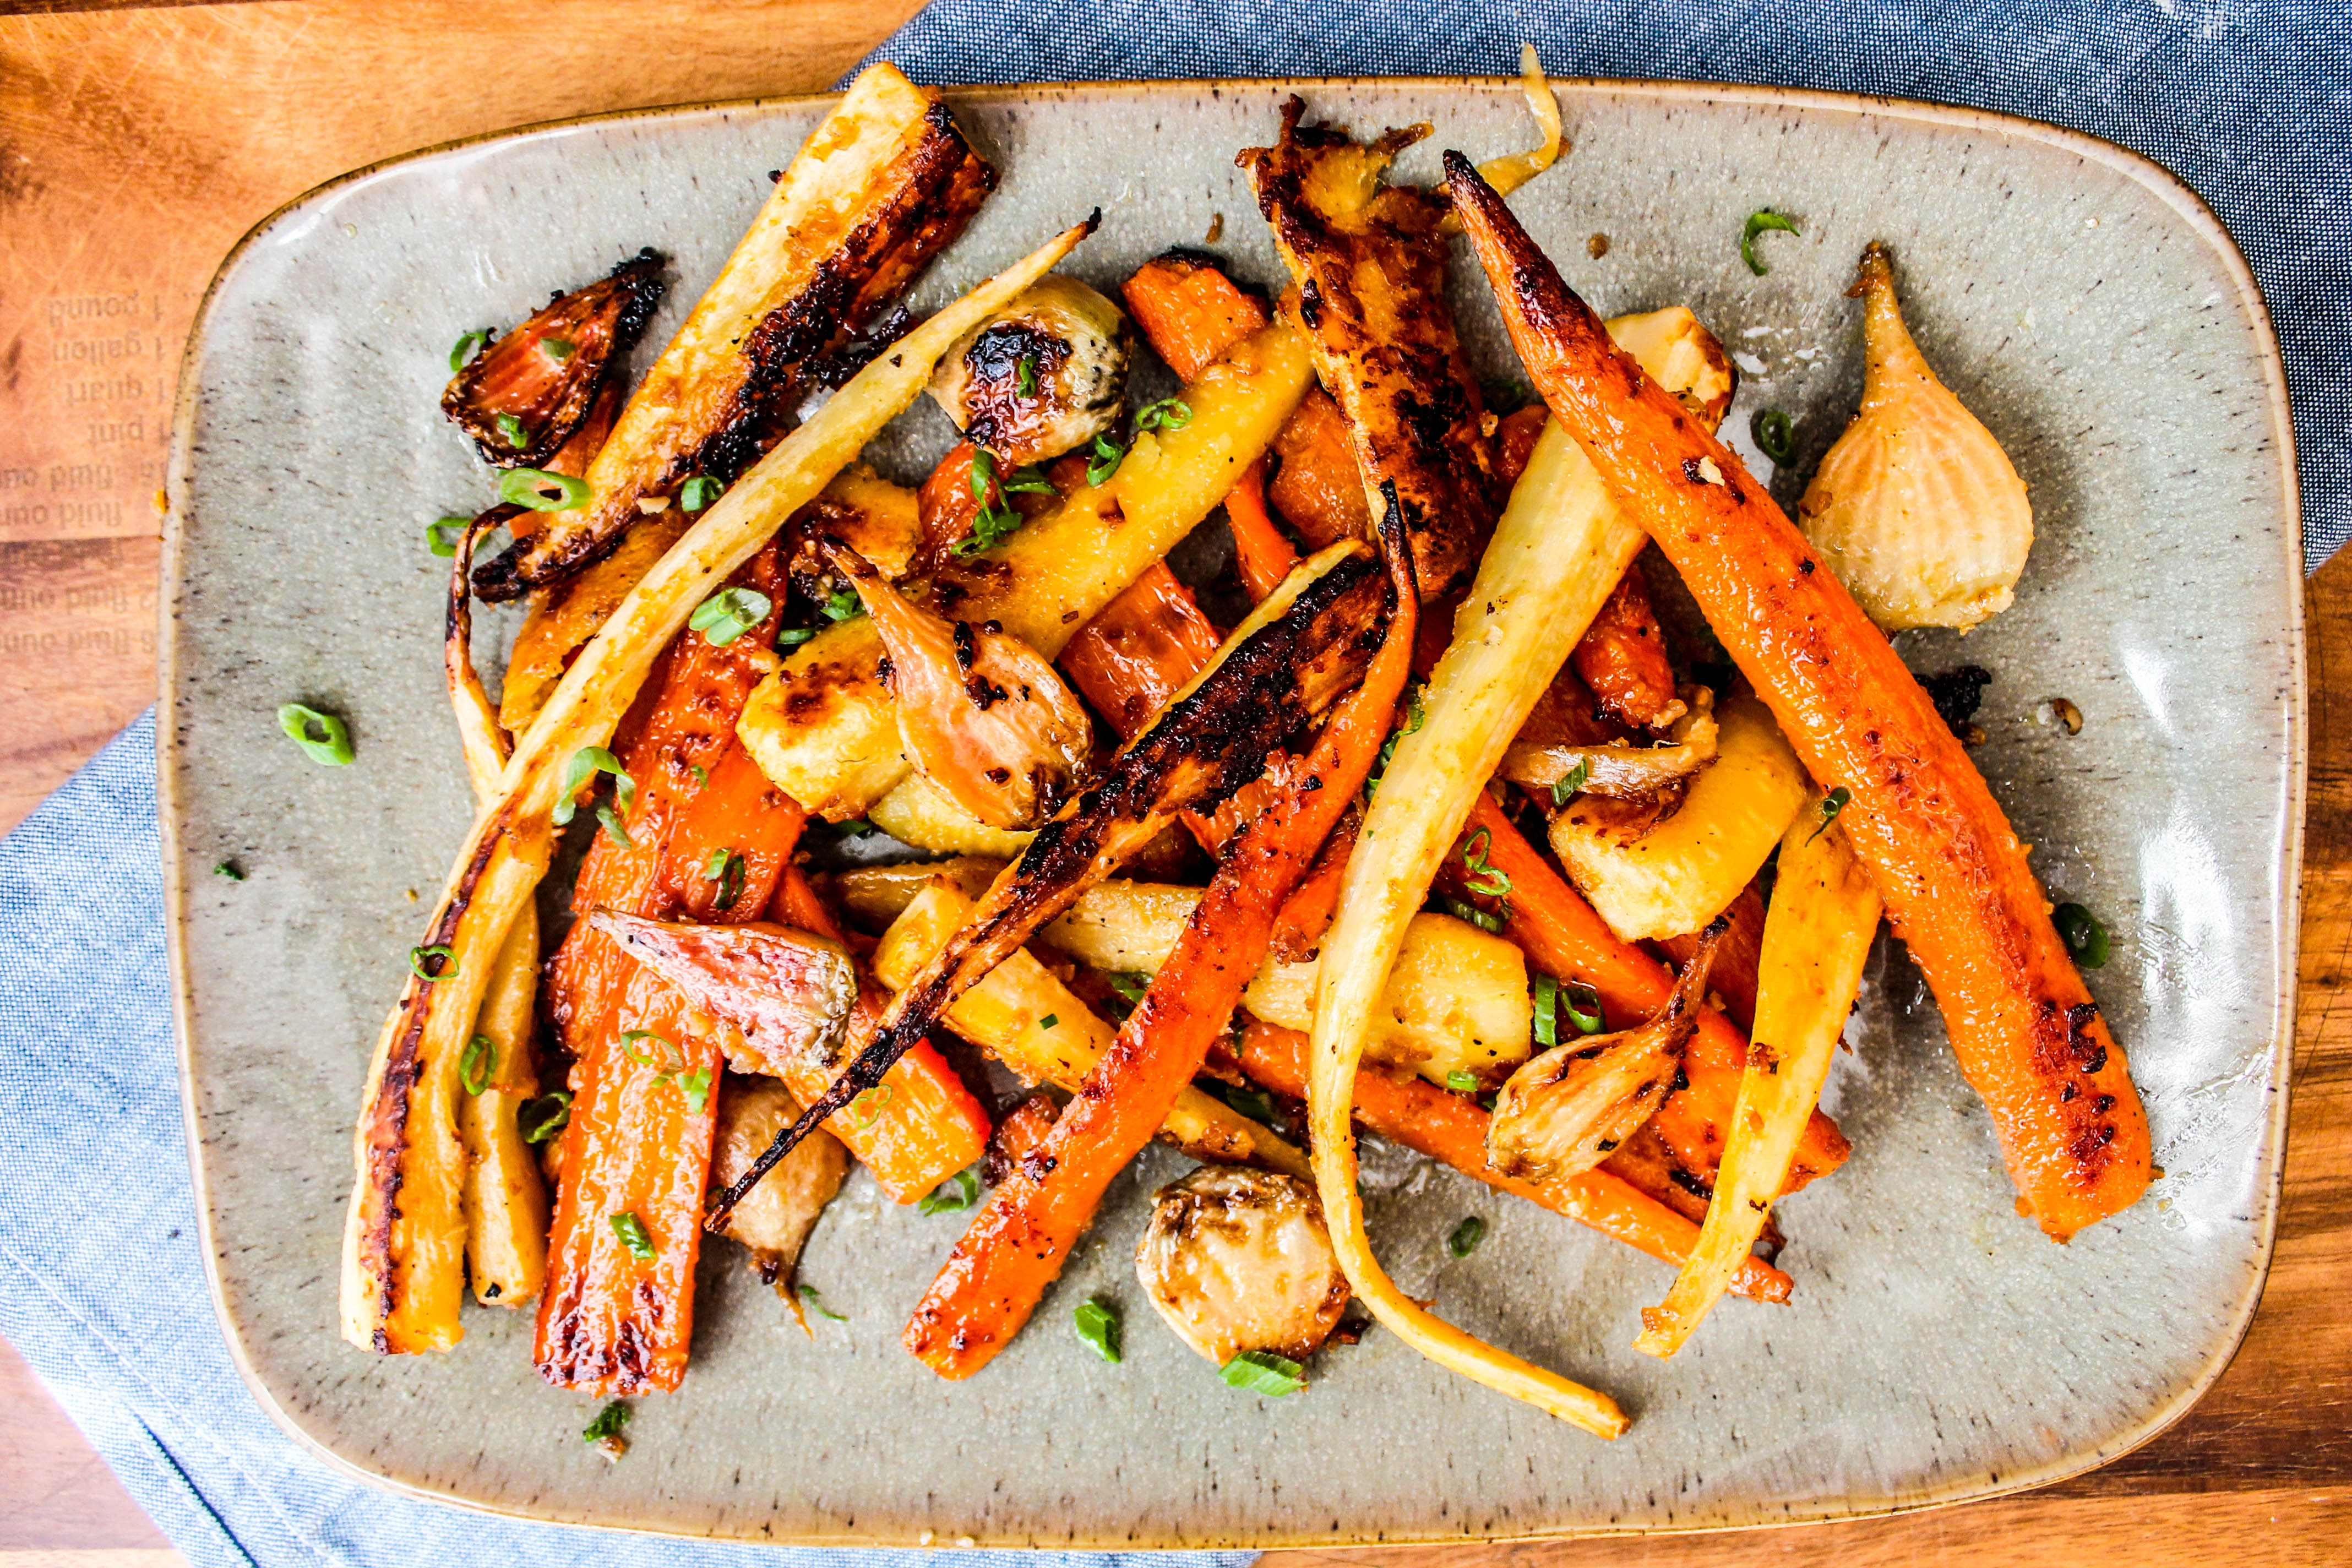 Miso Roasted Root Vegetables